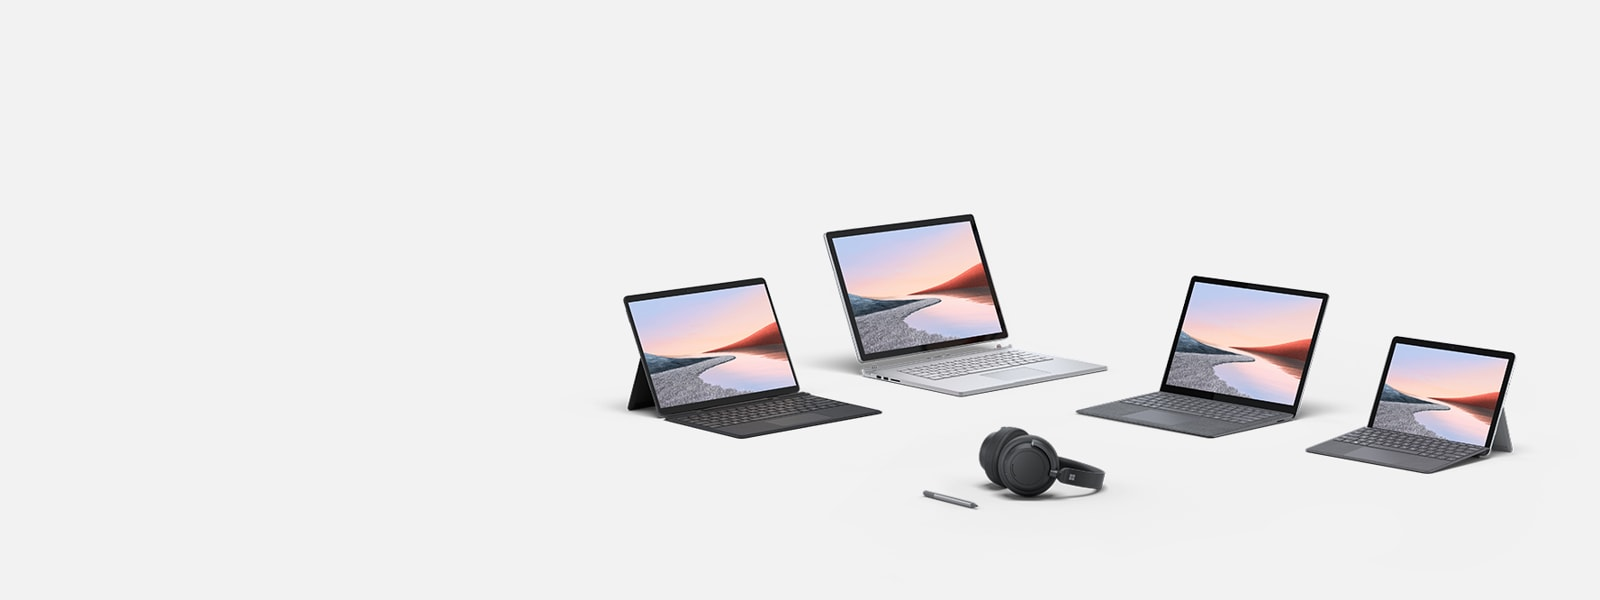 Surface Pro X with Keyboard, Surface Go 2 with Type Cover, Surface Laptop 4, Surface Book 3, Surface Headphones 2, Surface Pen